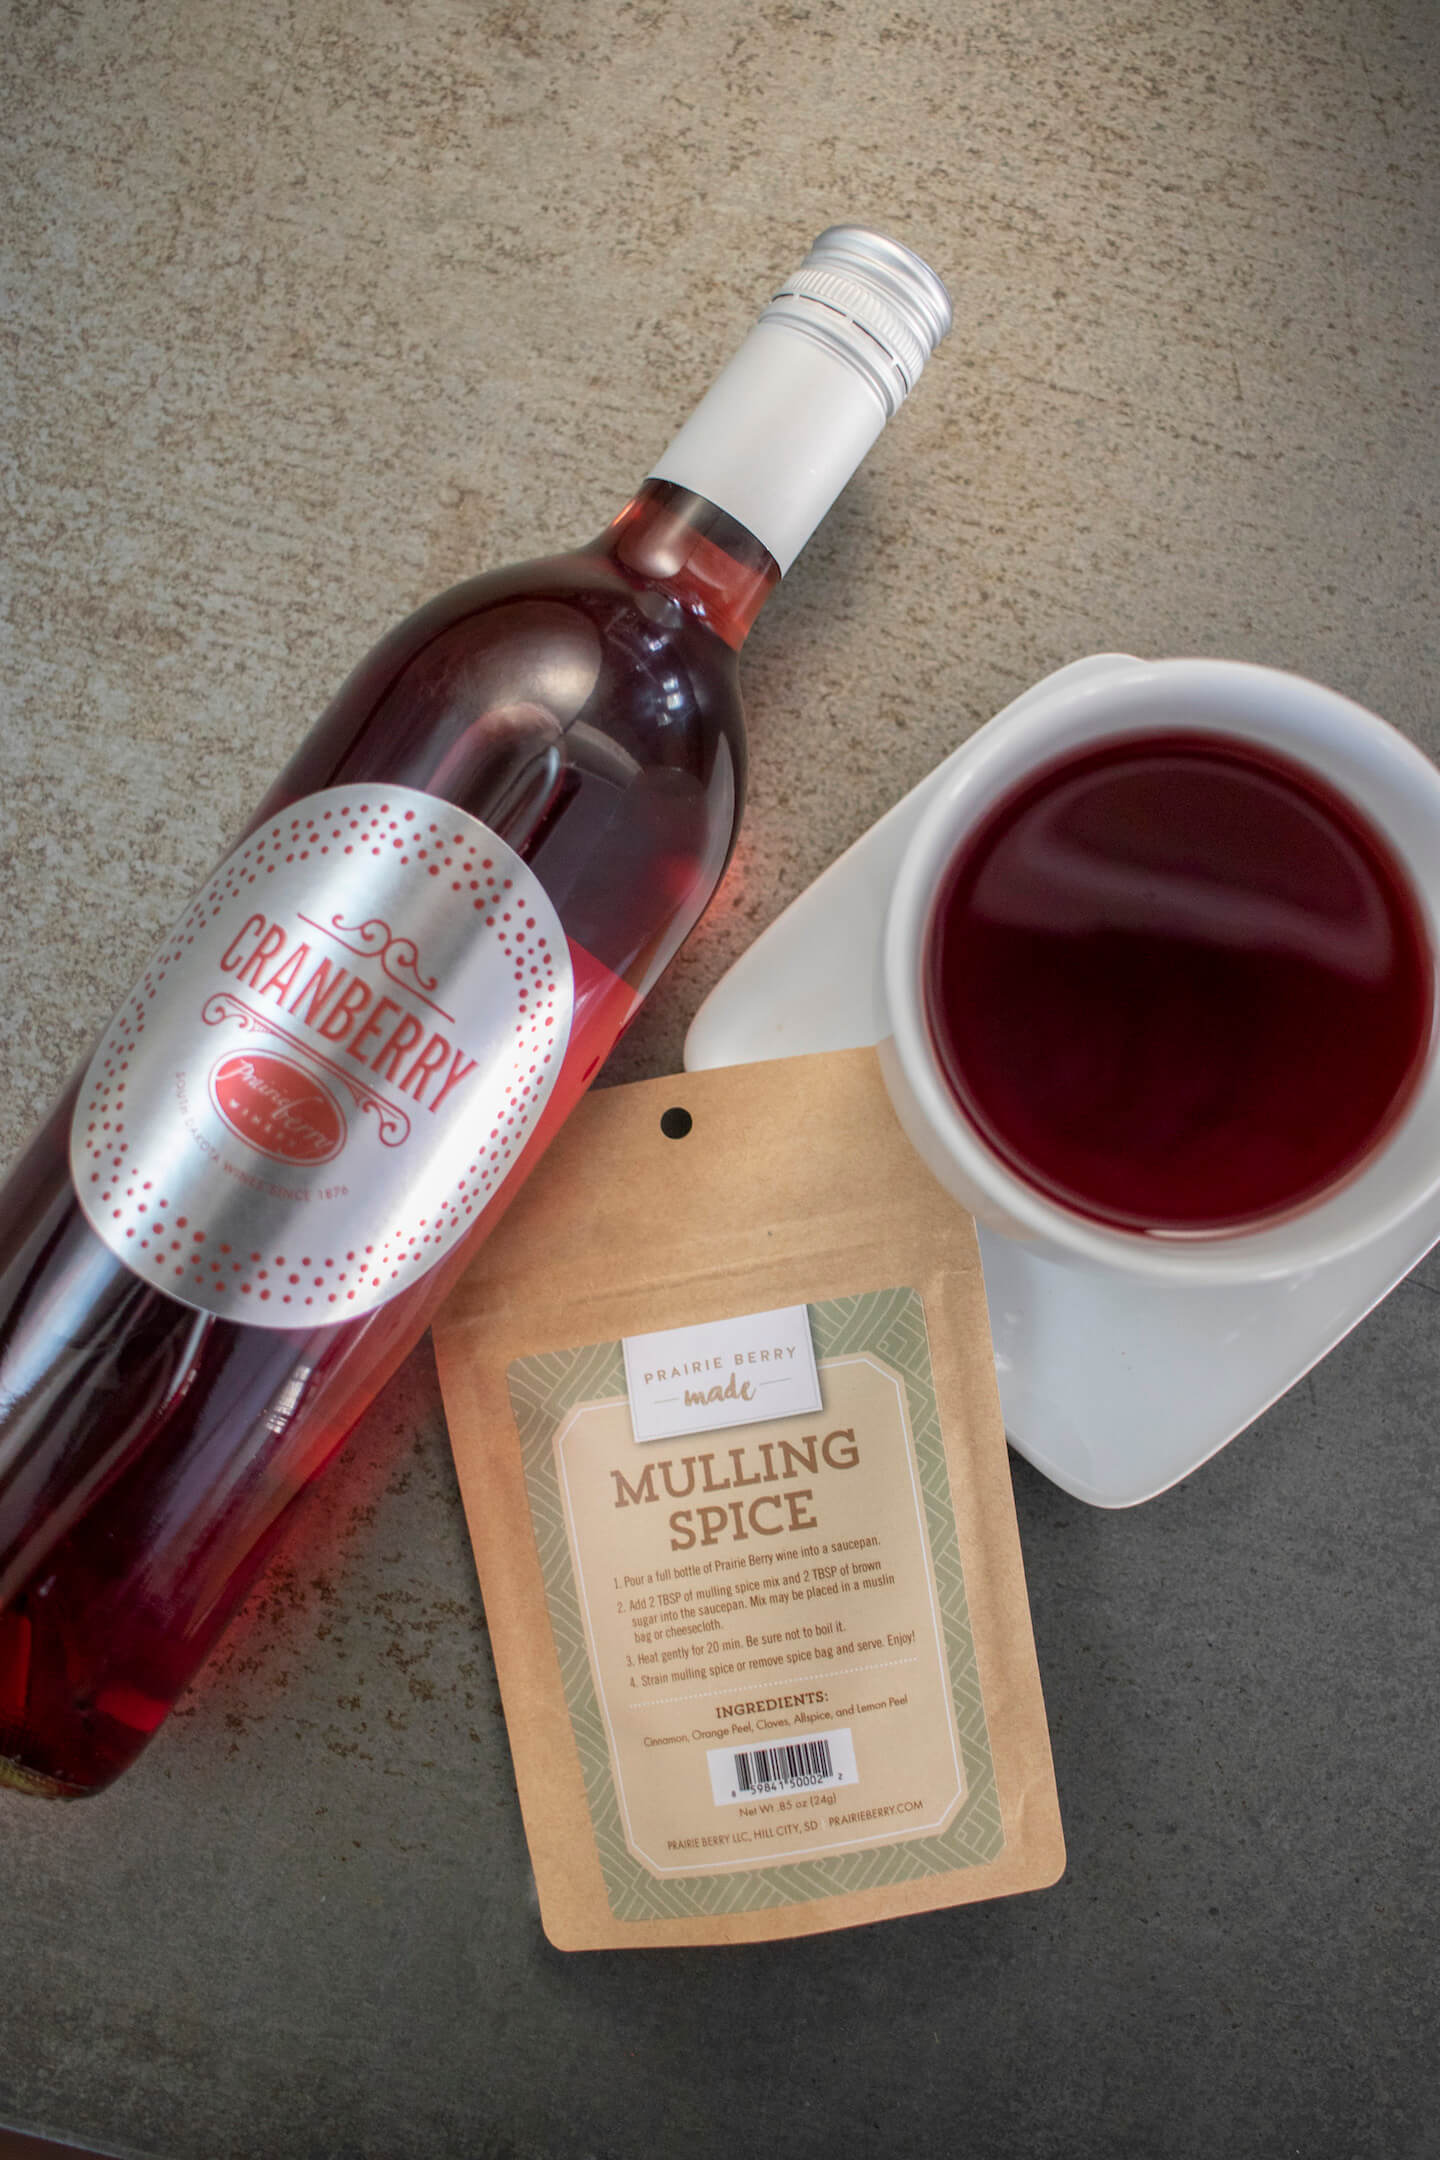 A bottle of Cranberry wine, Prairie Berry Made Mulling Spice, and a mug full of mulled wine